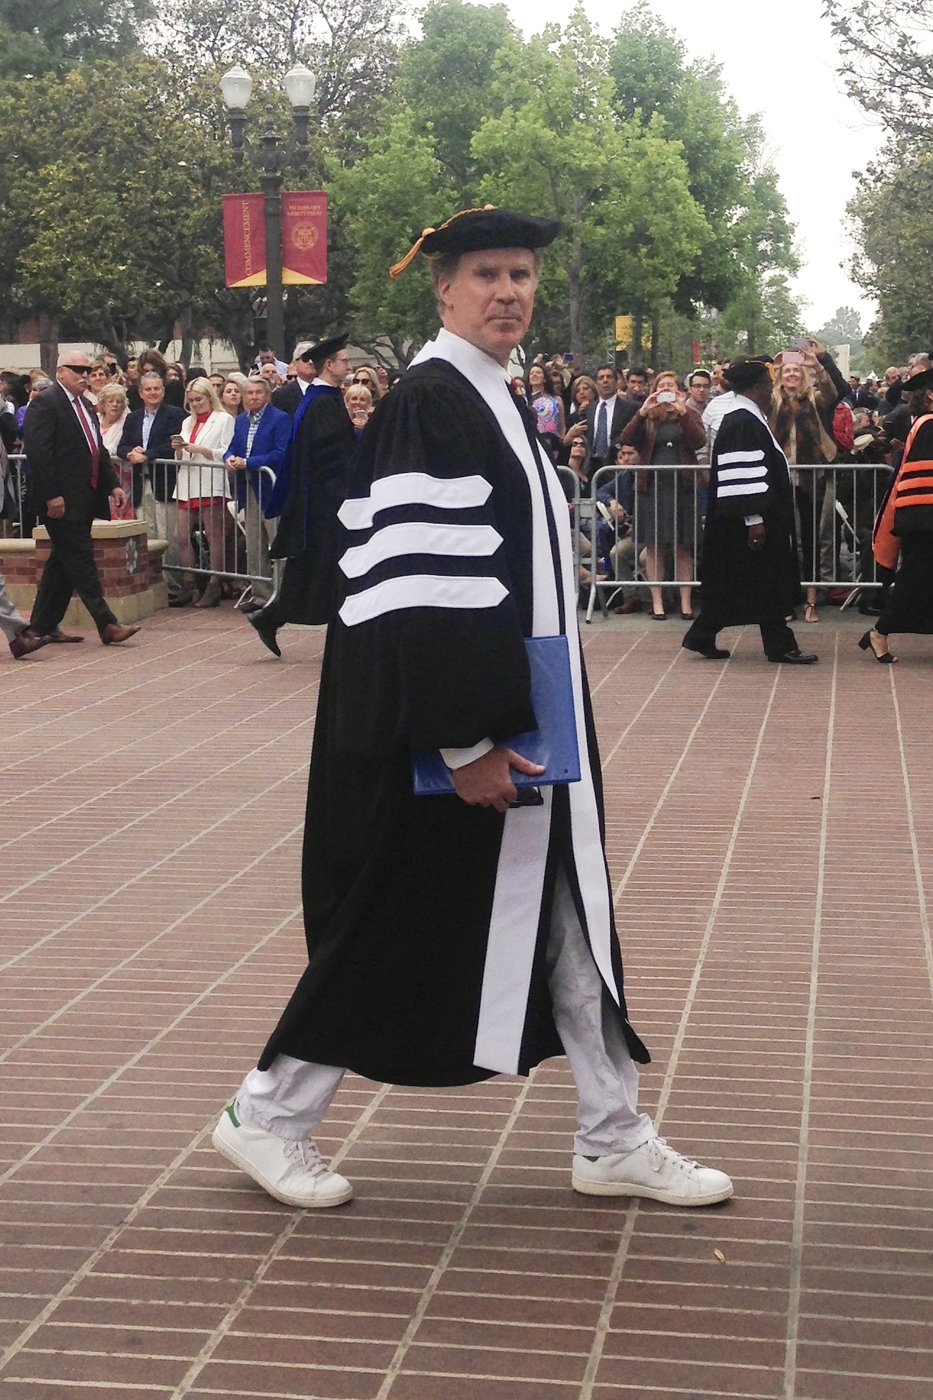 University of Southern California alum Will Ferrell arrives to give the keynote commencement address at his alma mater on May 12, 2017